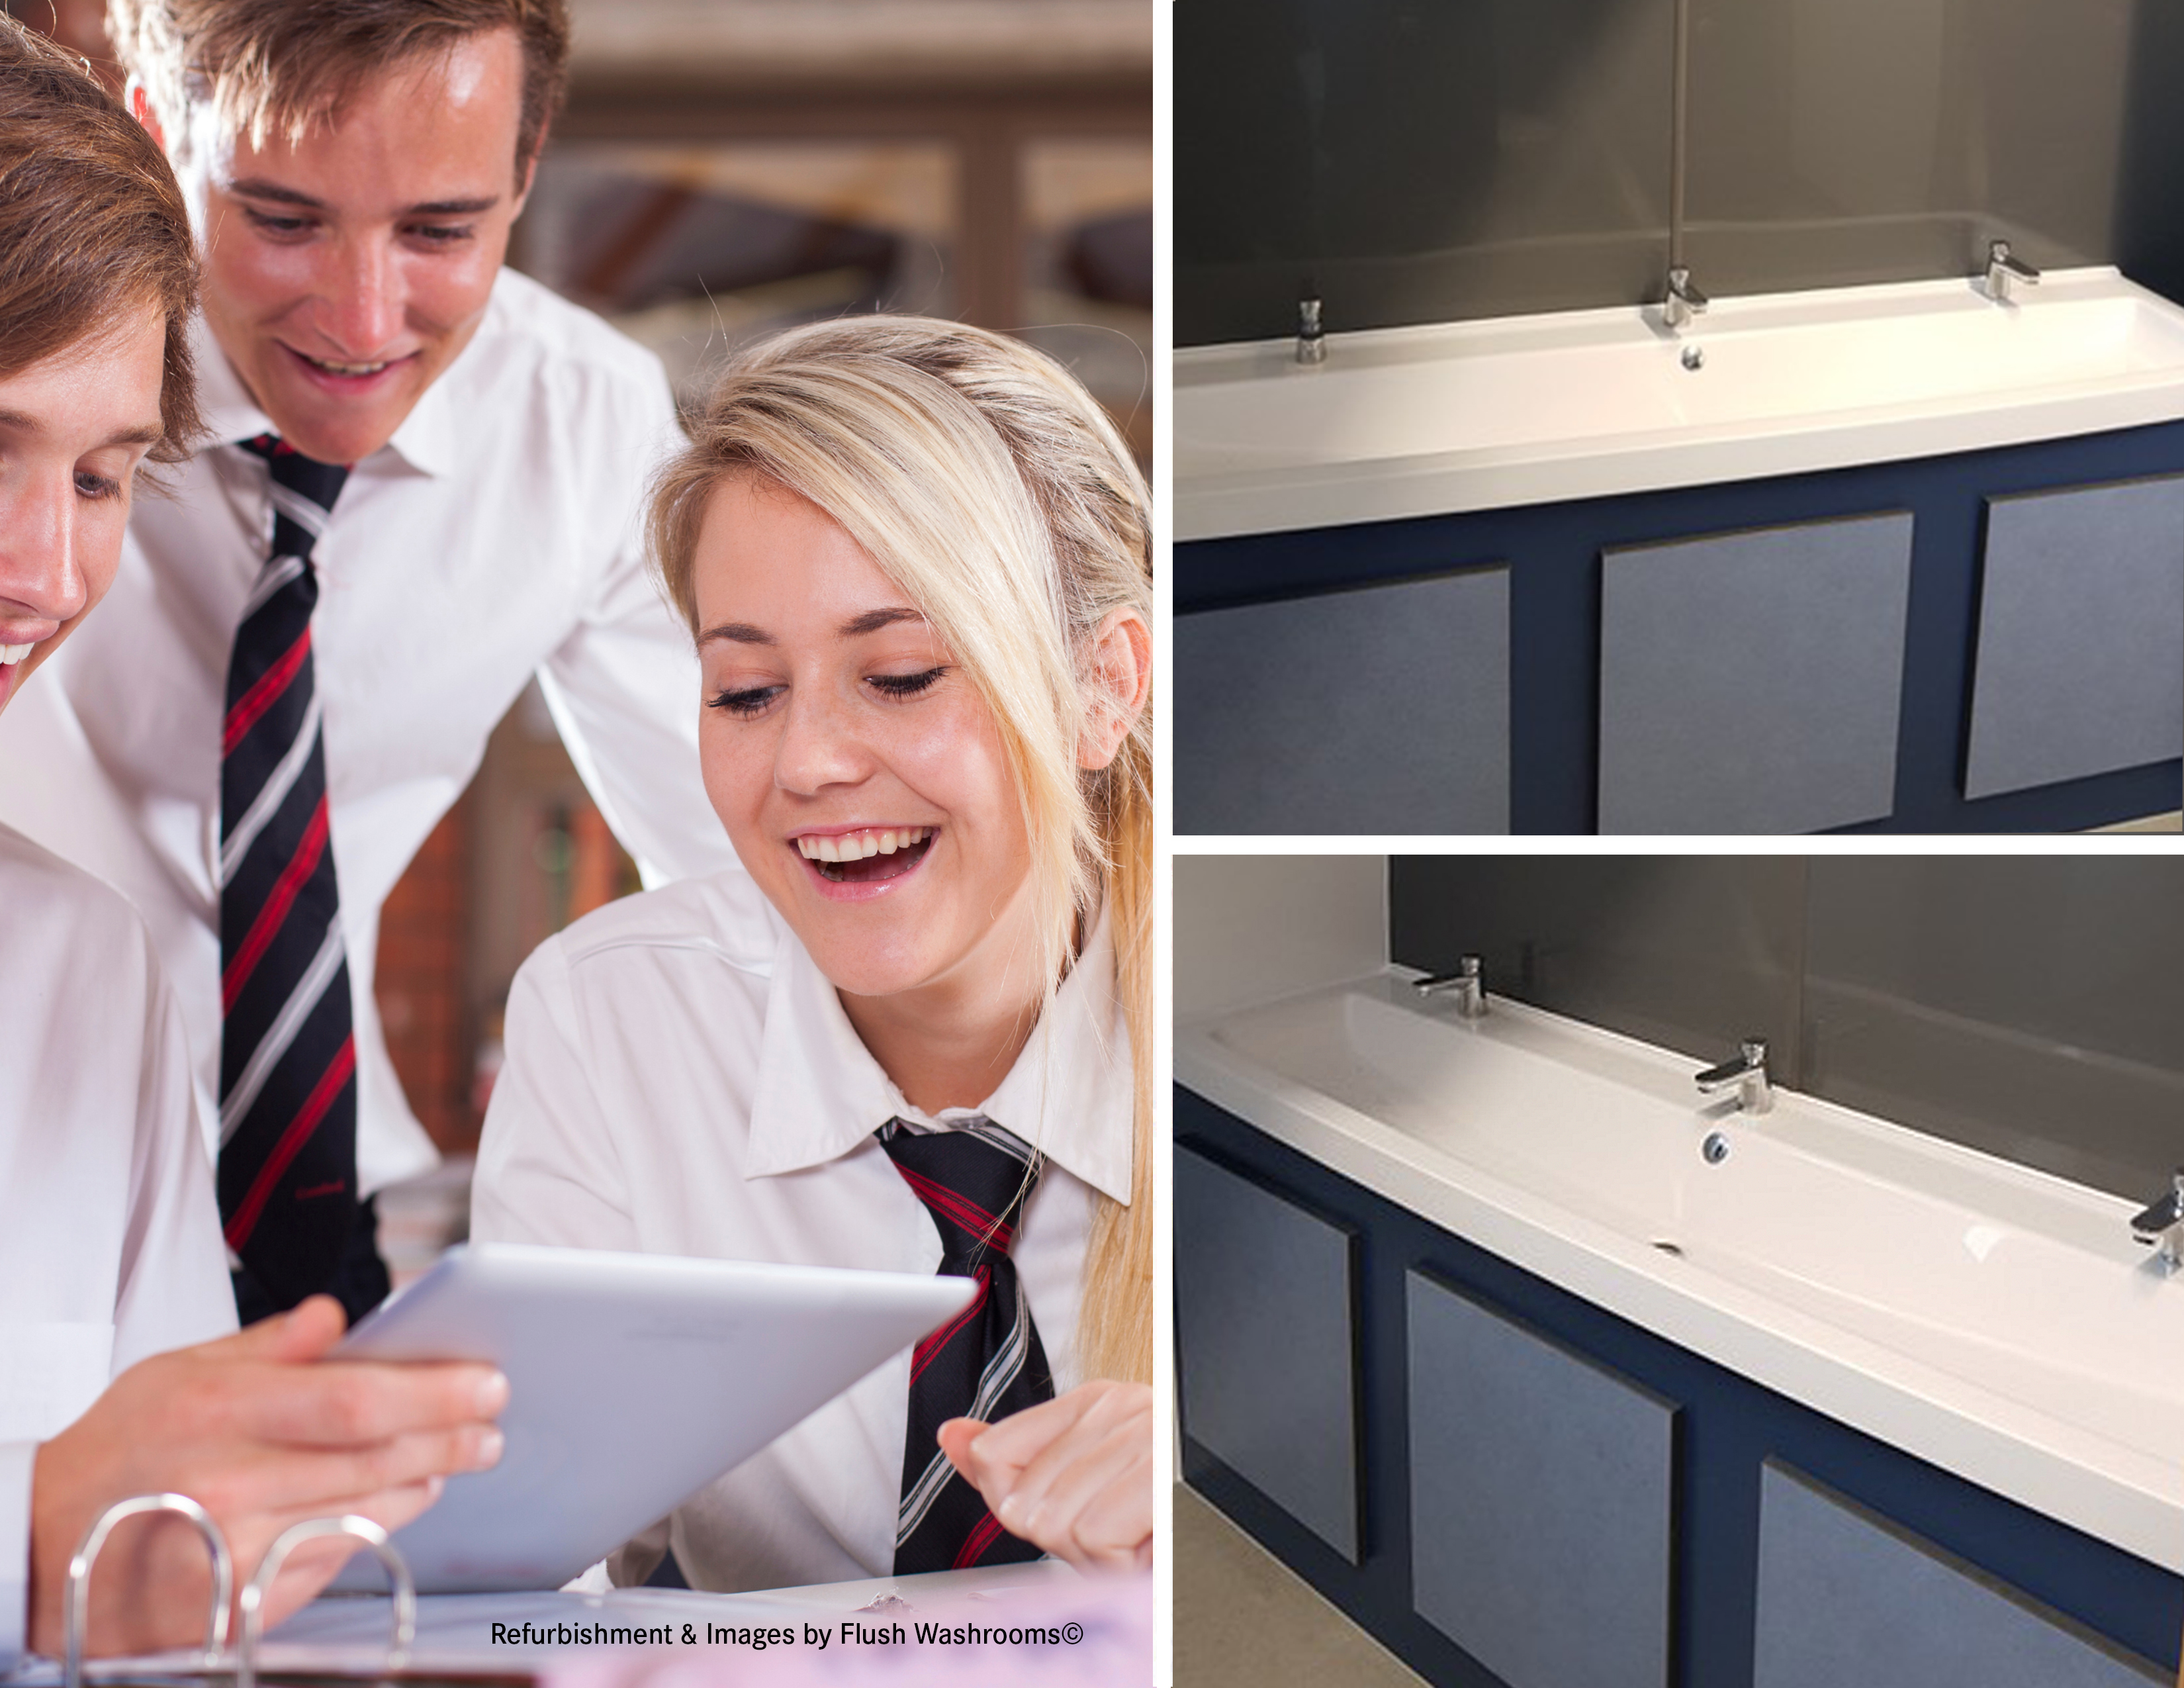 Franke supply washtroughs to Halcross Academy in Doncaster for washroom revamp